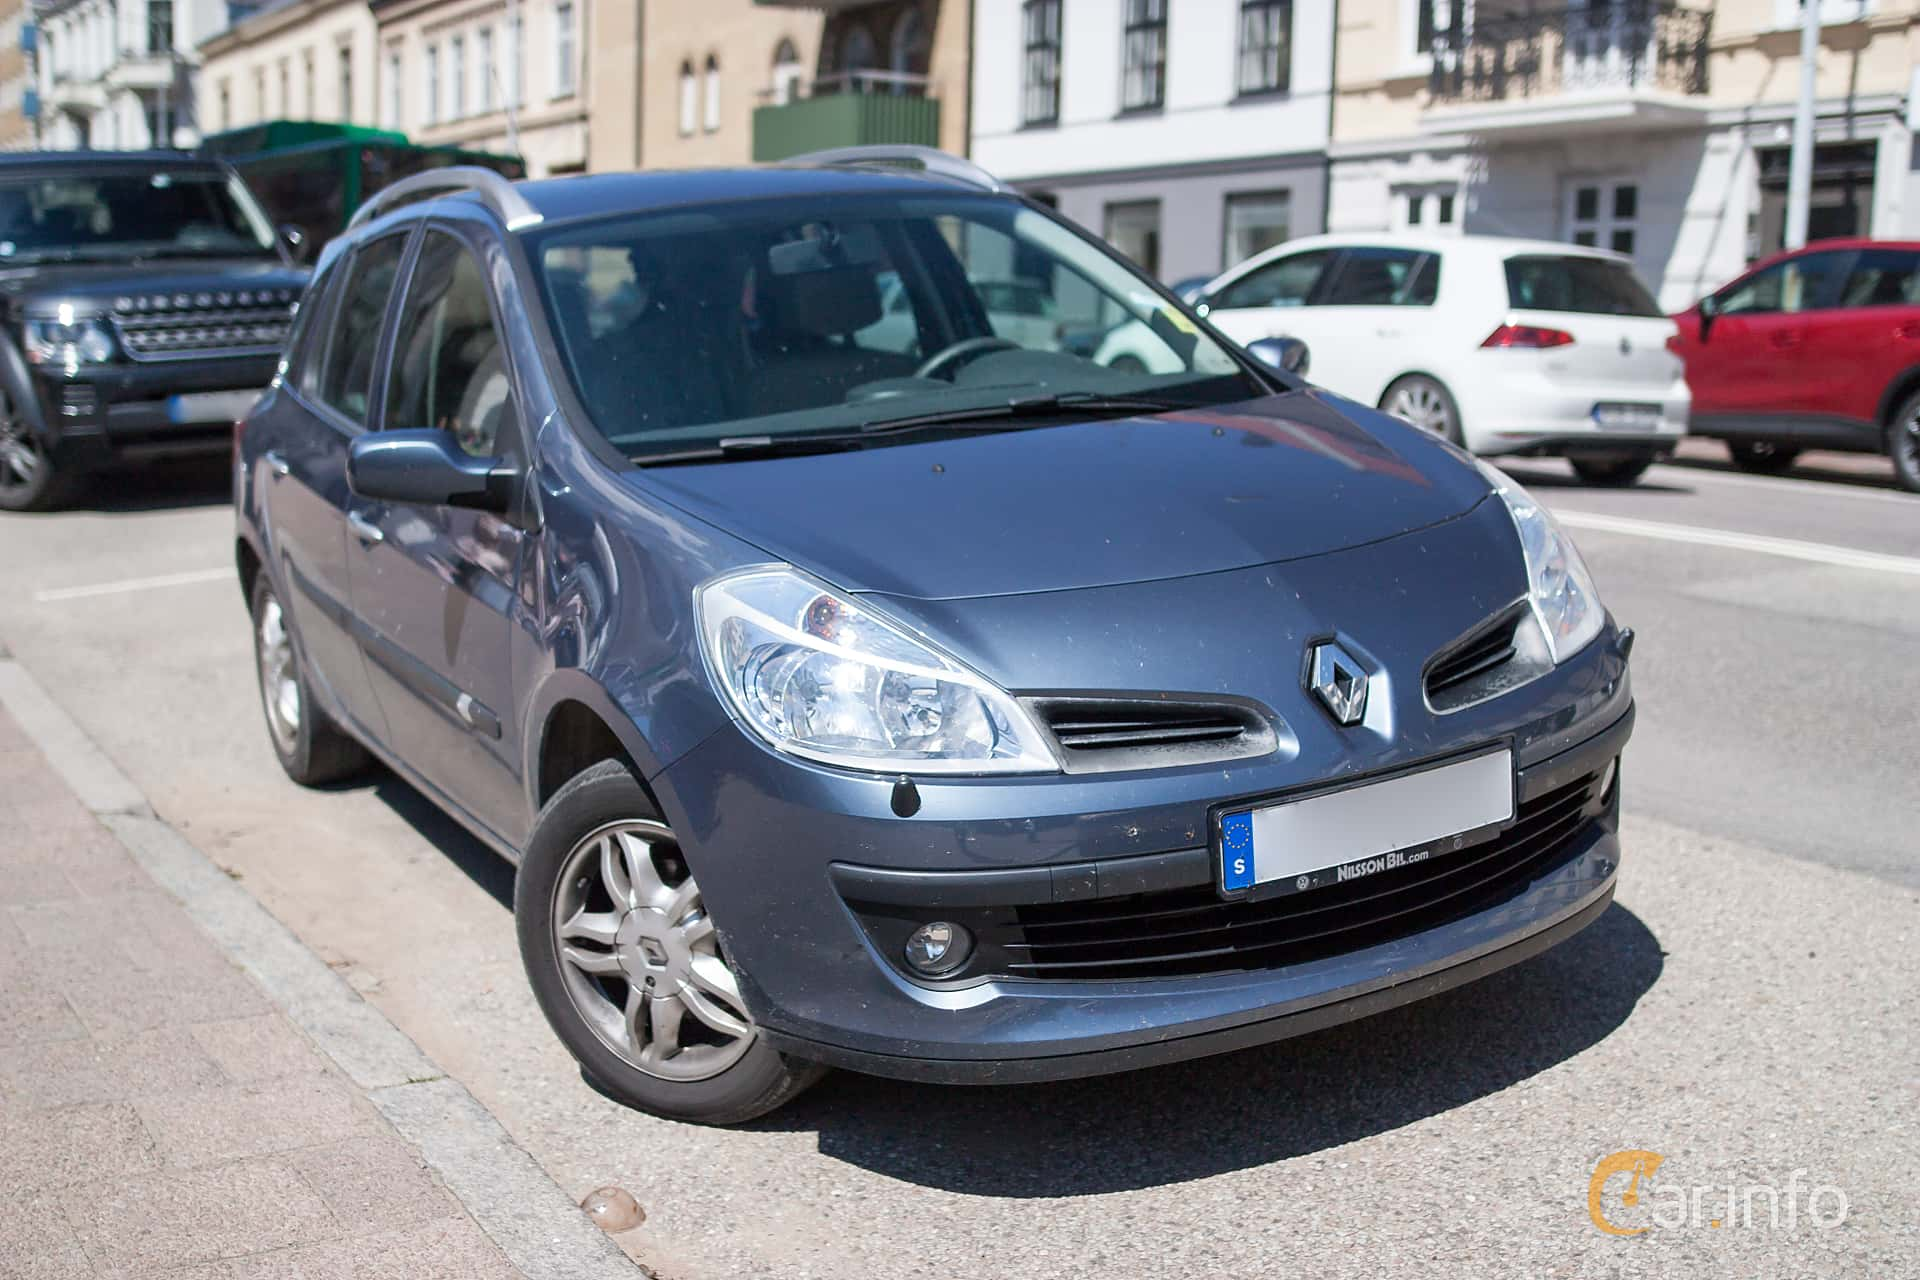 Front/Side of Renault Clio Sport Tourer 1.2 TCe Manual, 101ps, 2008